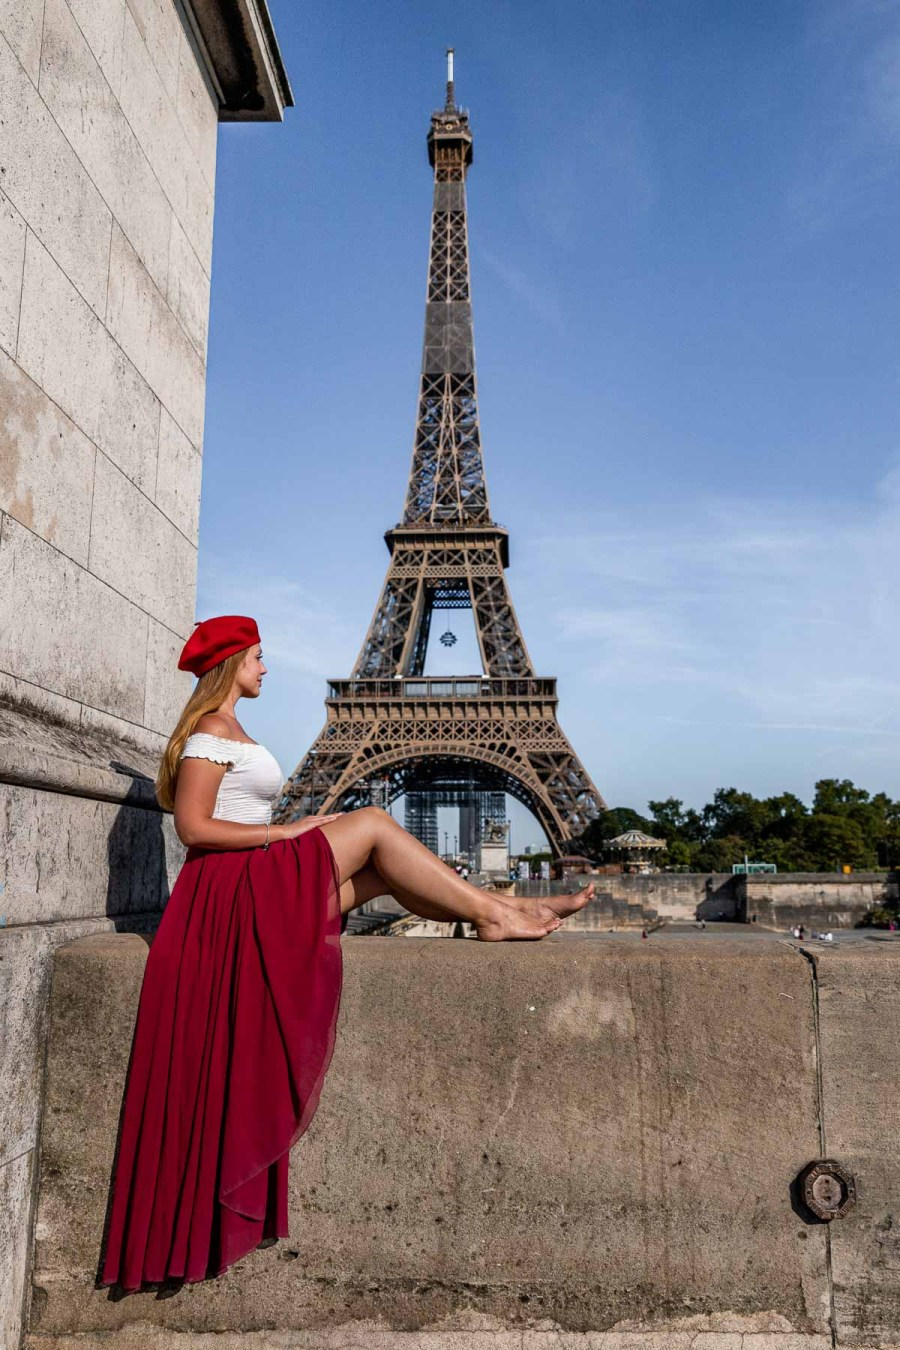 Girl in a red skirt and beret sitting on Pont d'Léna, looking at the Eiffel Tower